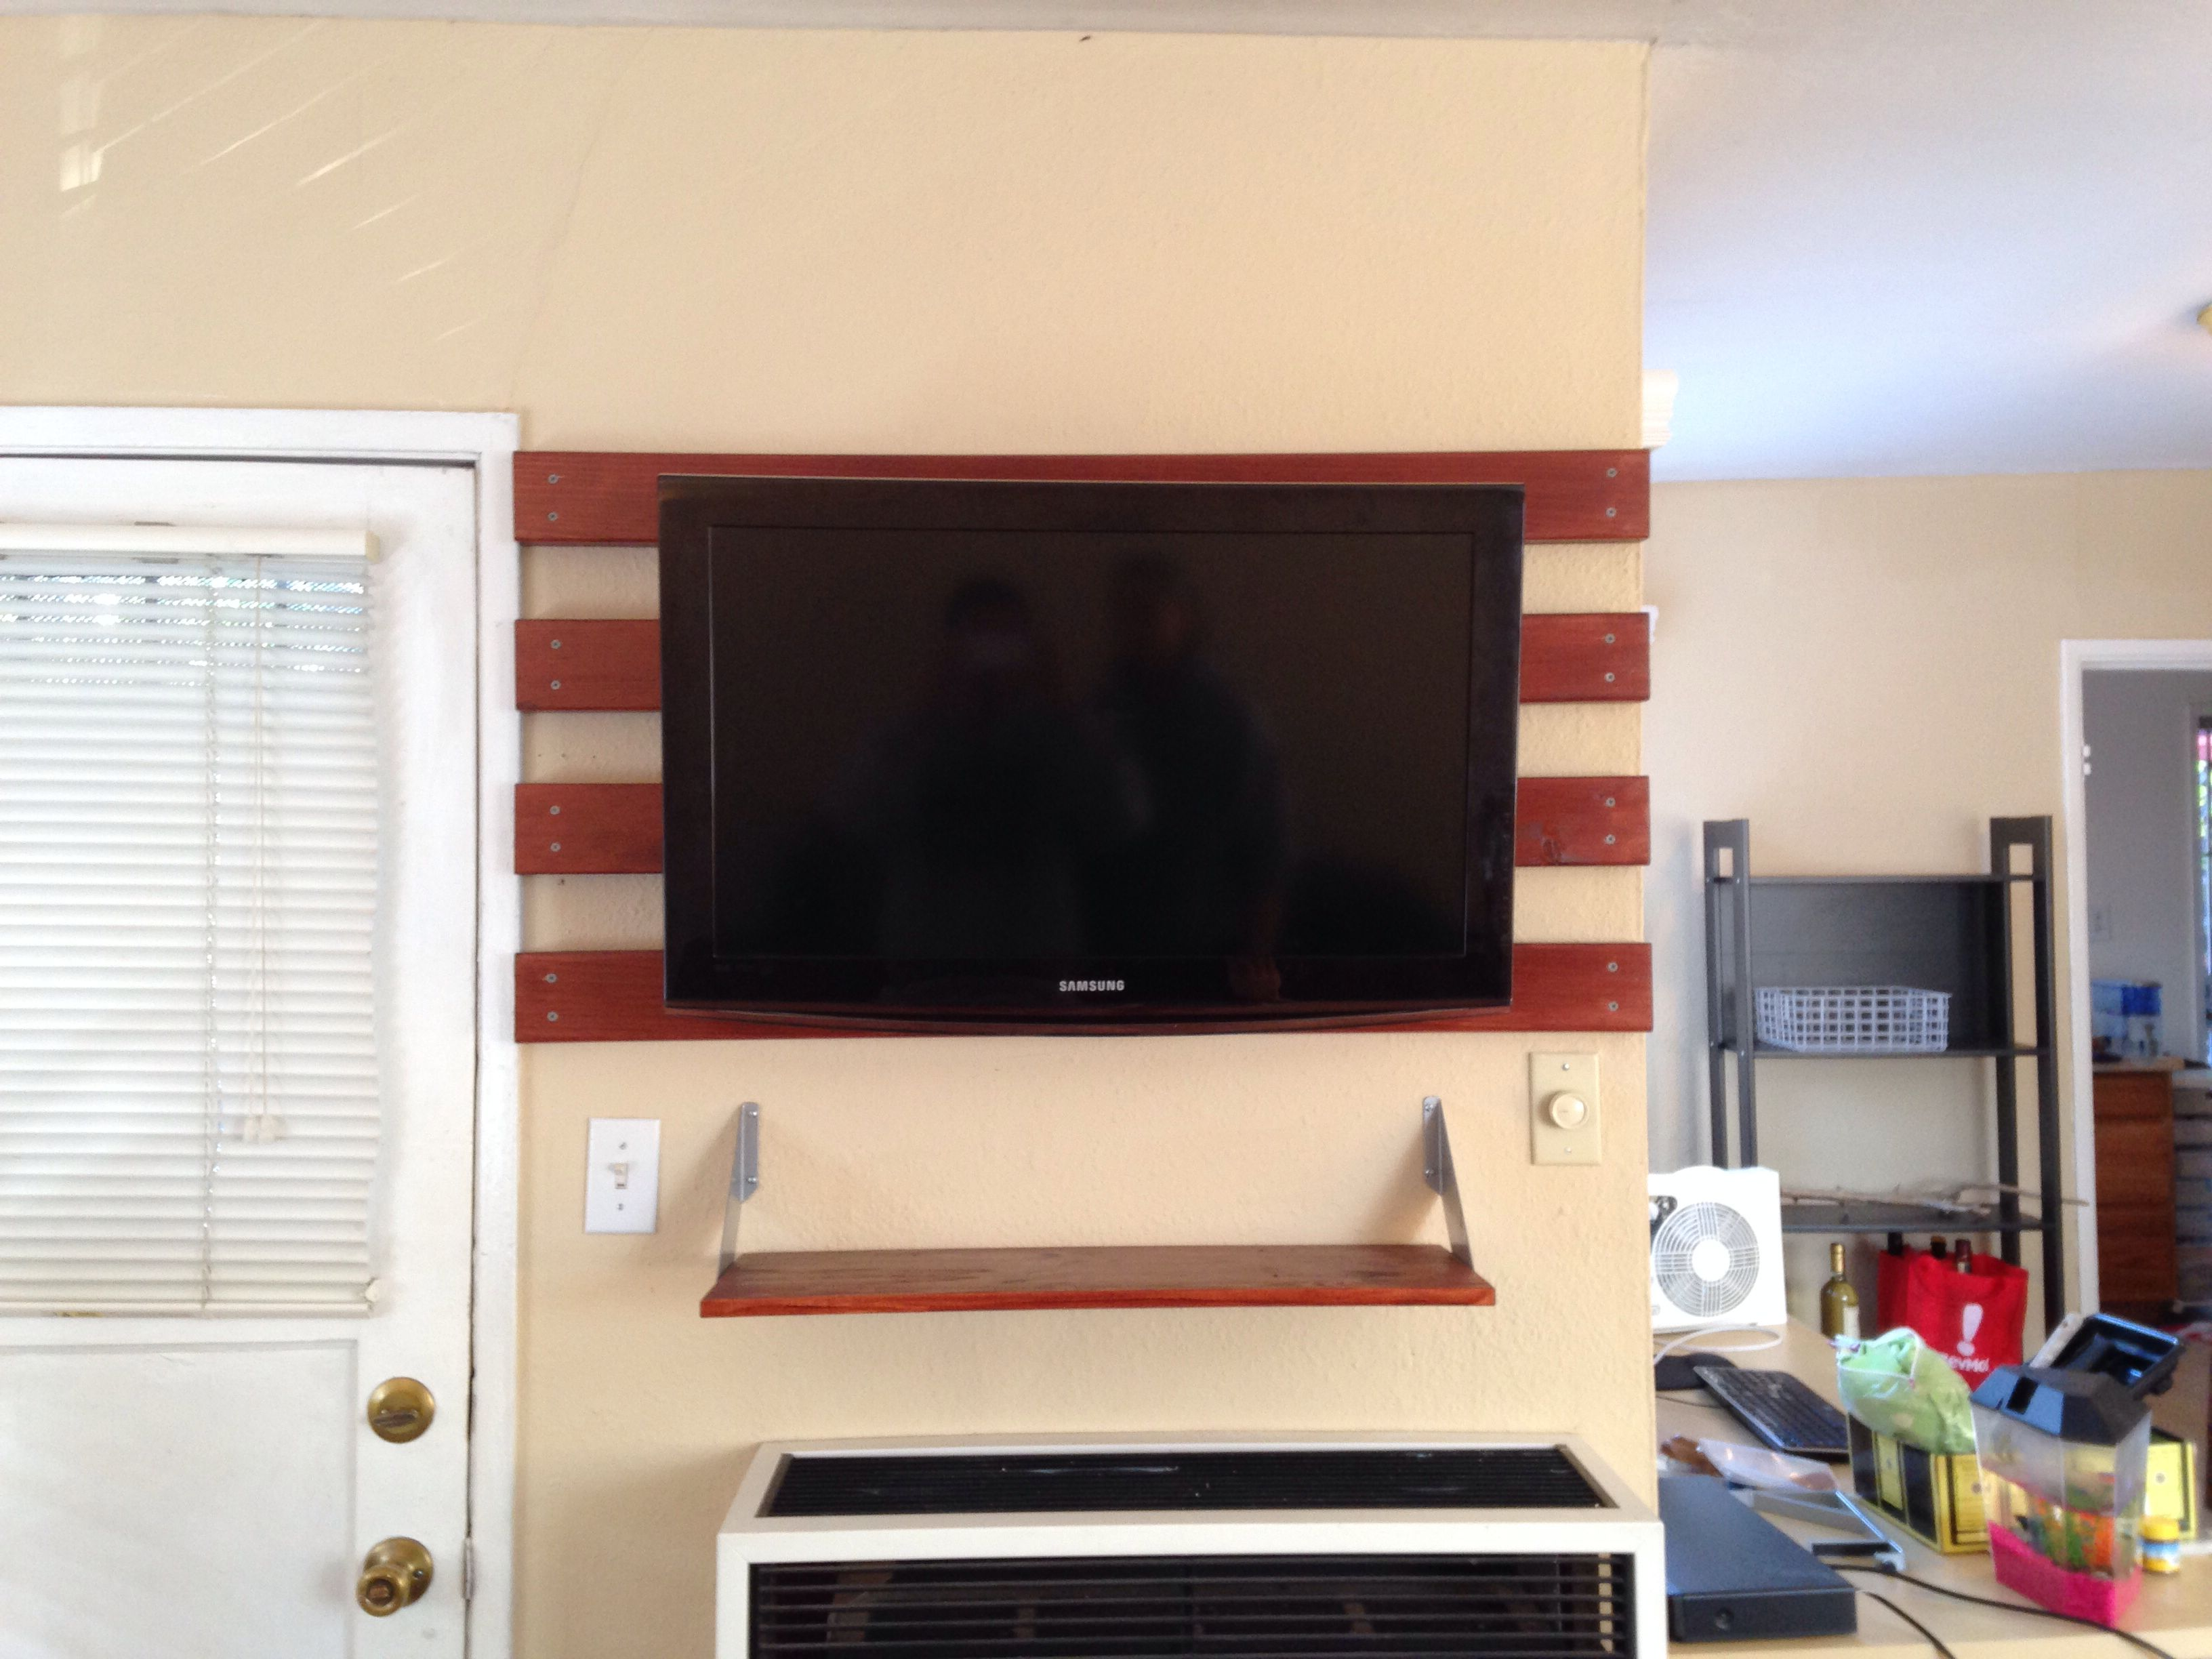 Dyi Wall Mounted Tv With No Stud We Wanted To Wall Mount Tv But